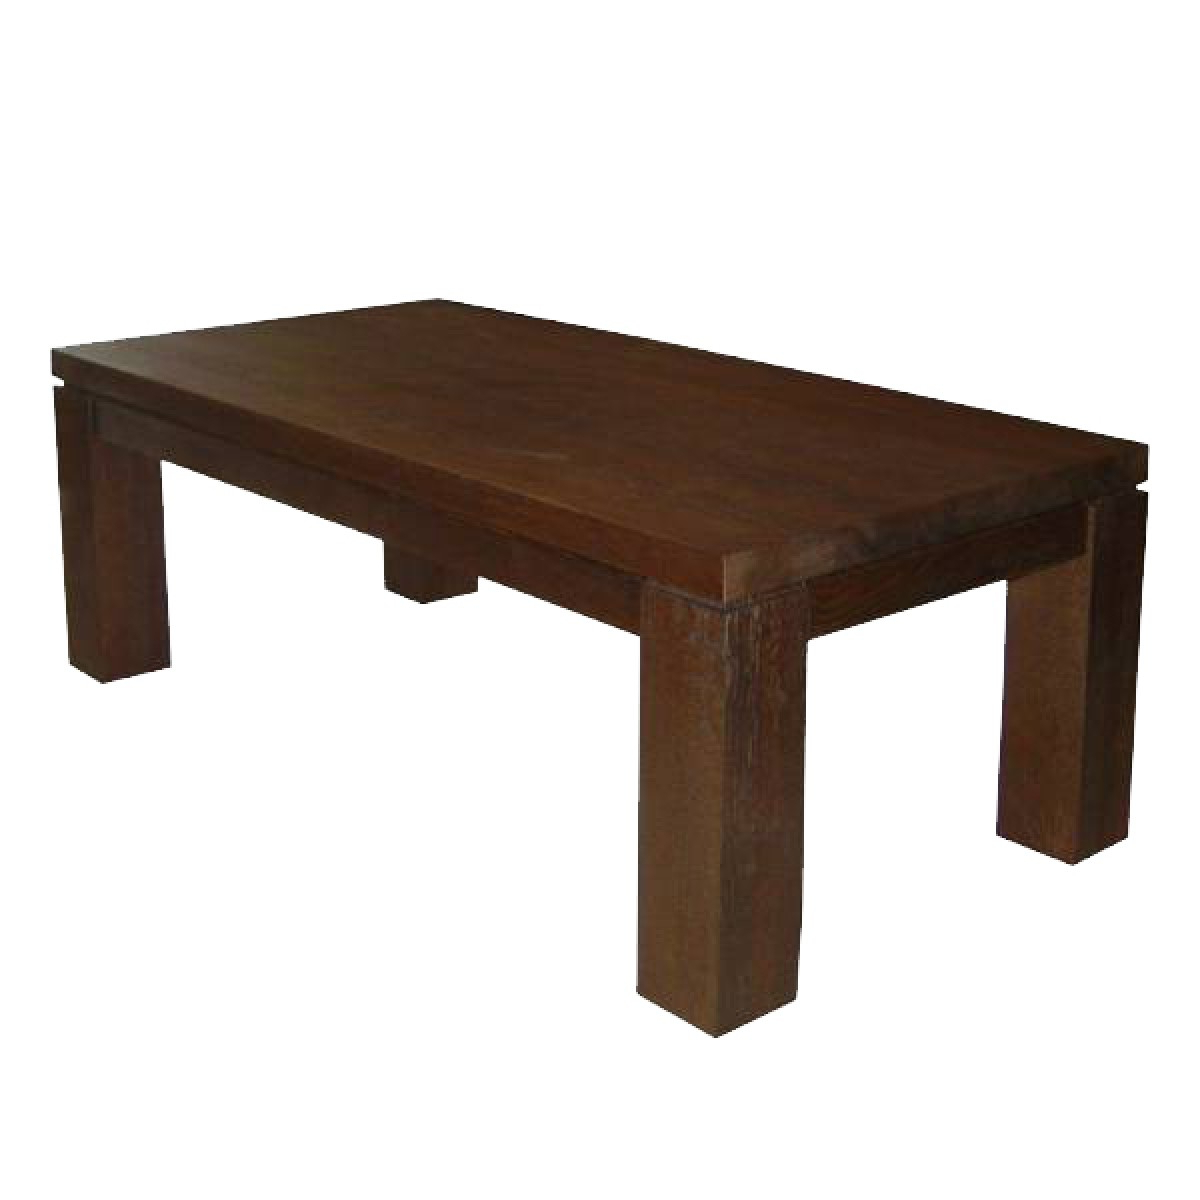 Adam Coffee Table – Coffee Tables – Shopproduct – Furniture In Current Adam Coffee Tables (View 4 of 20)